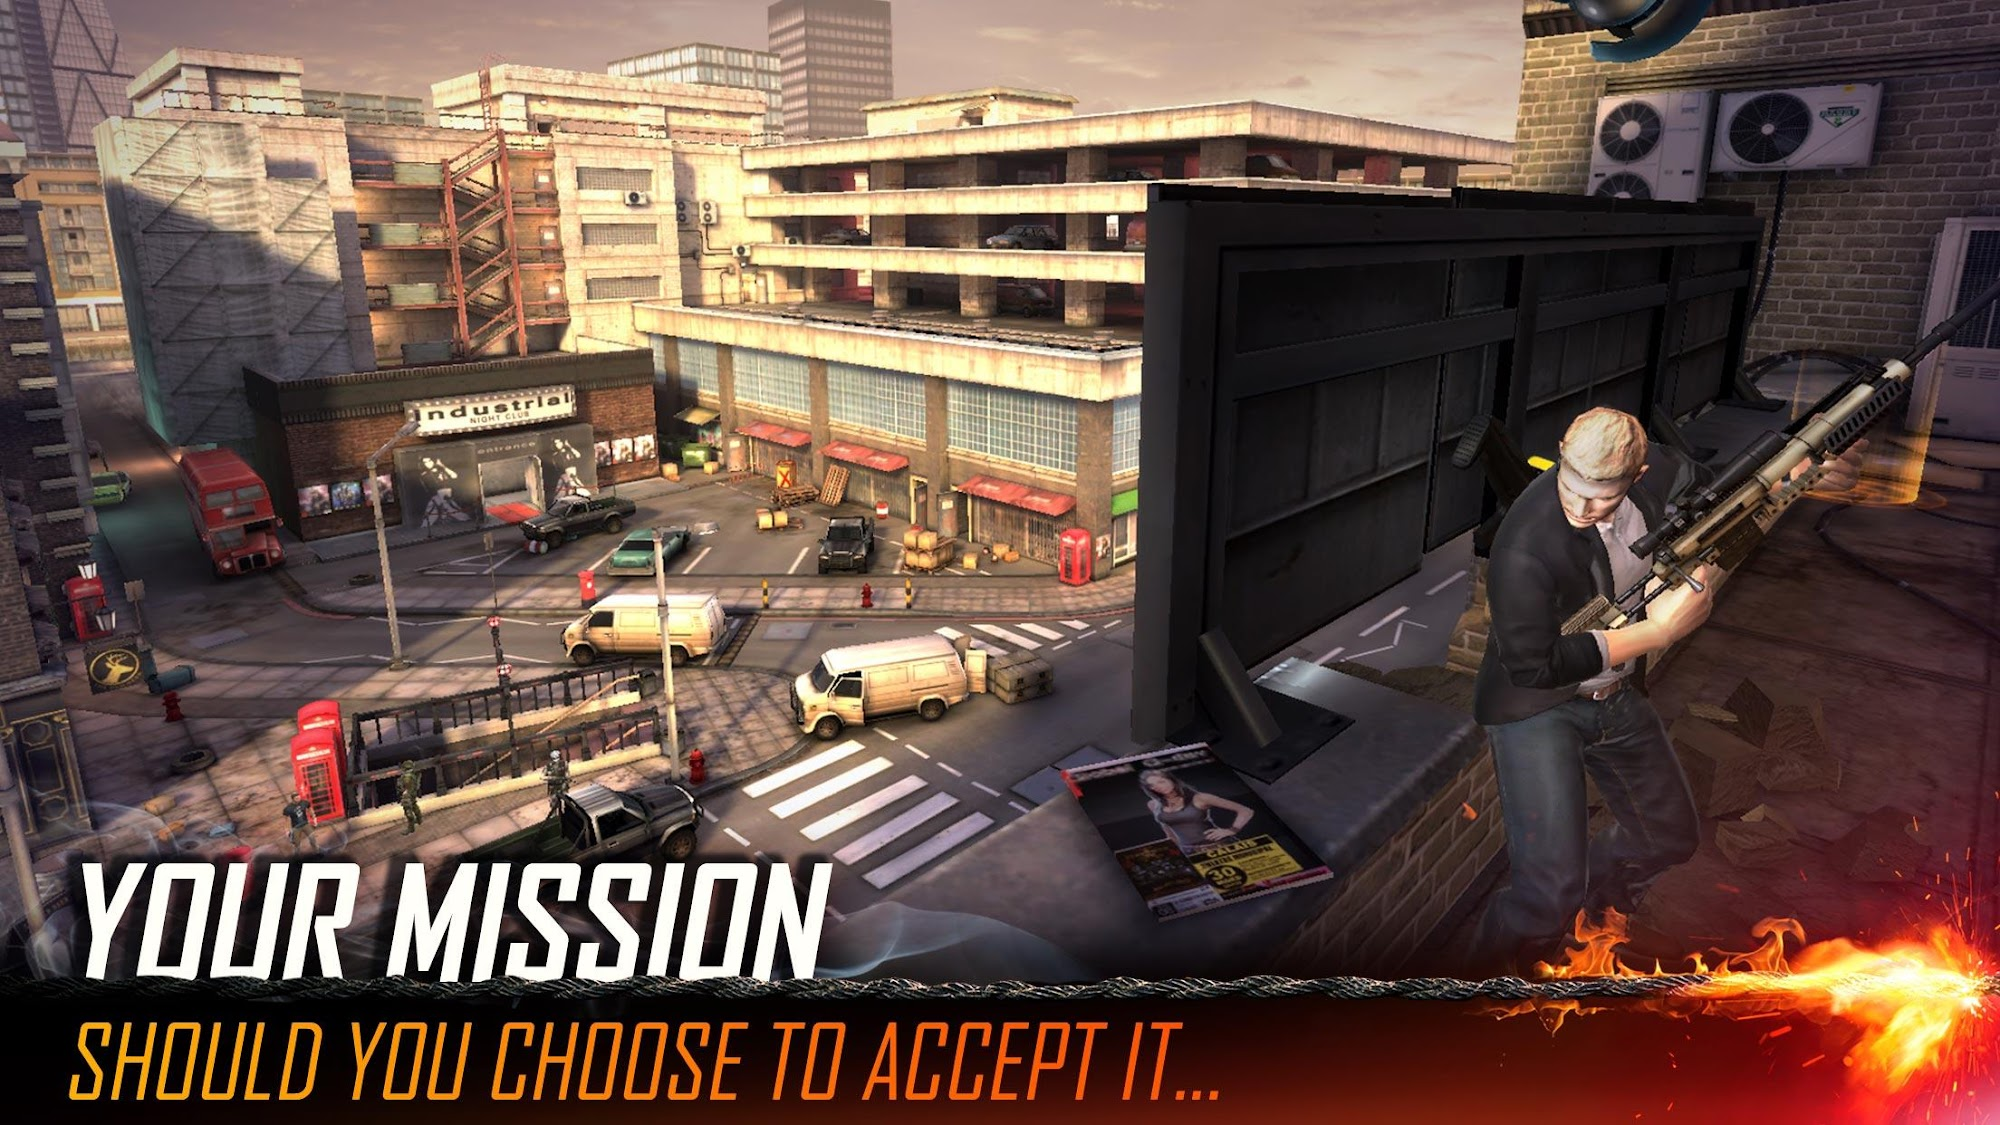 Mission Impossible RogueNation screenshot #8